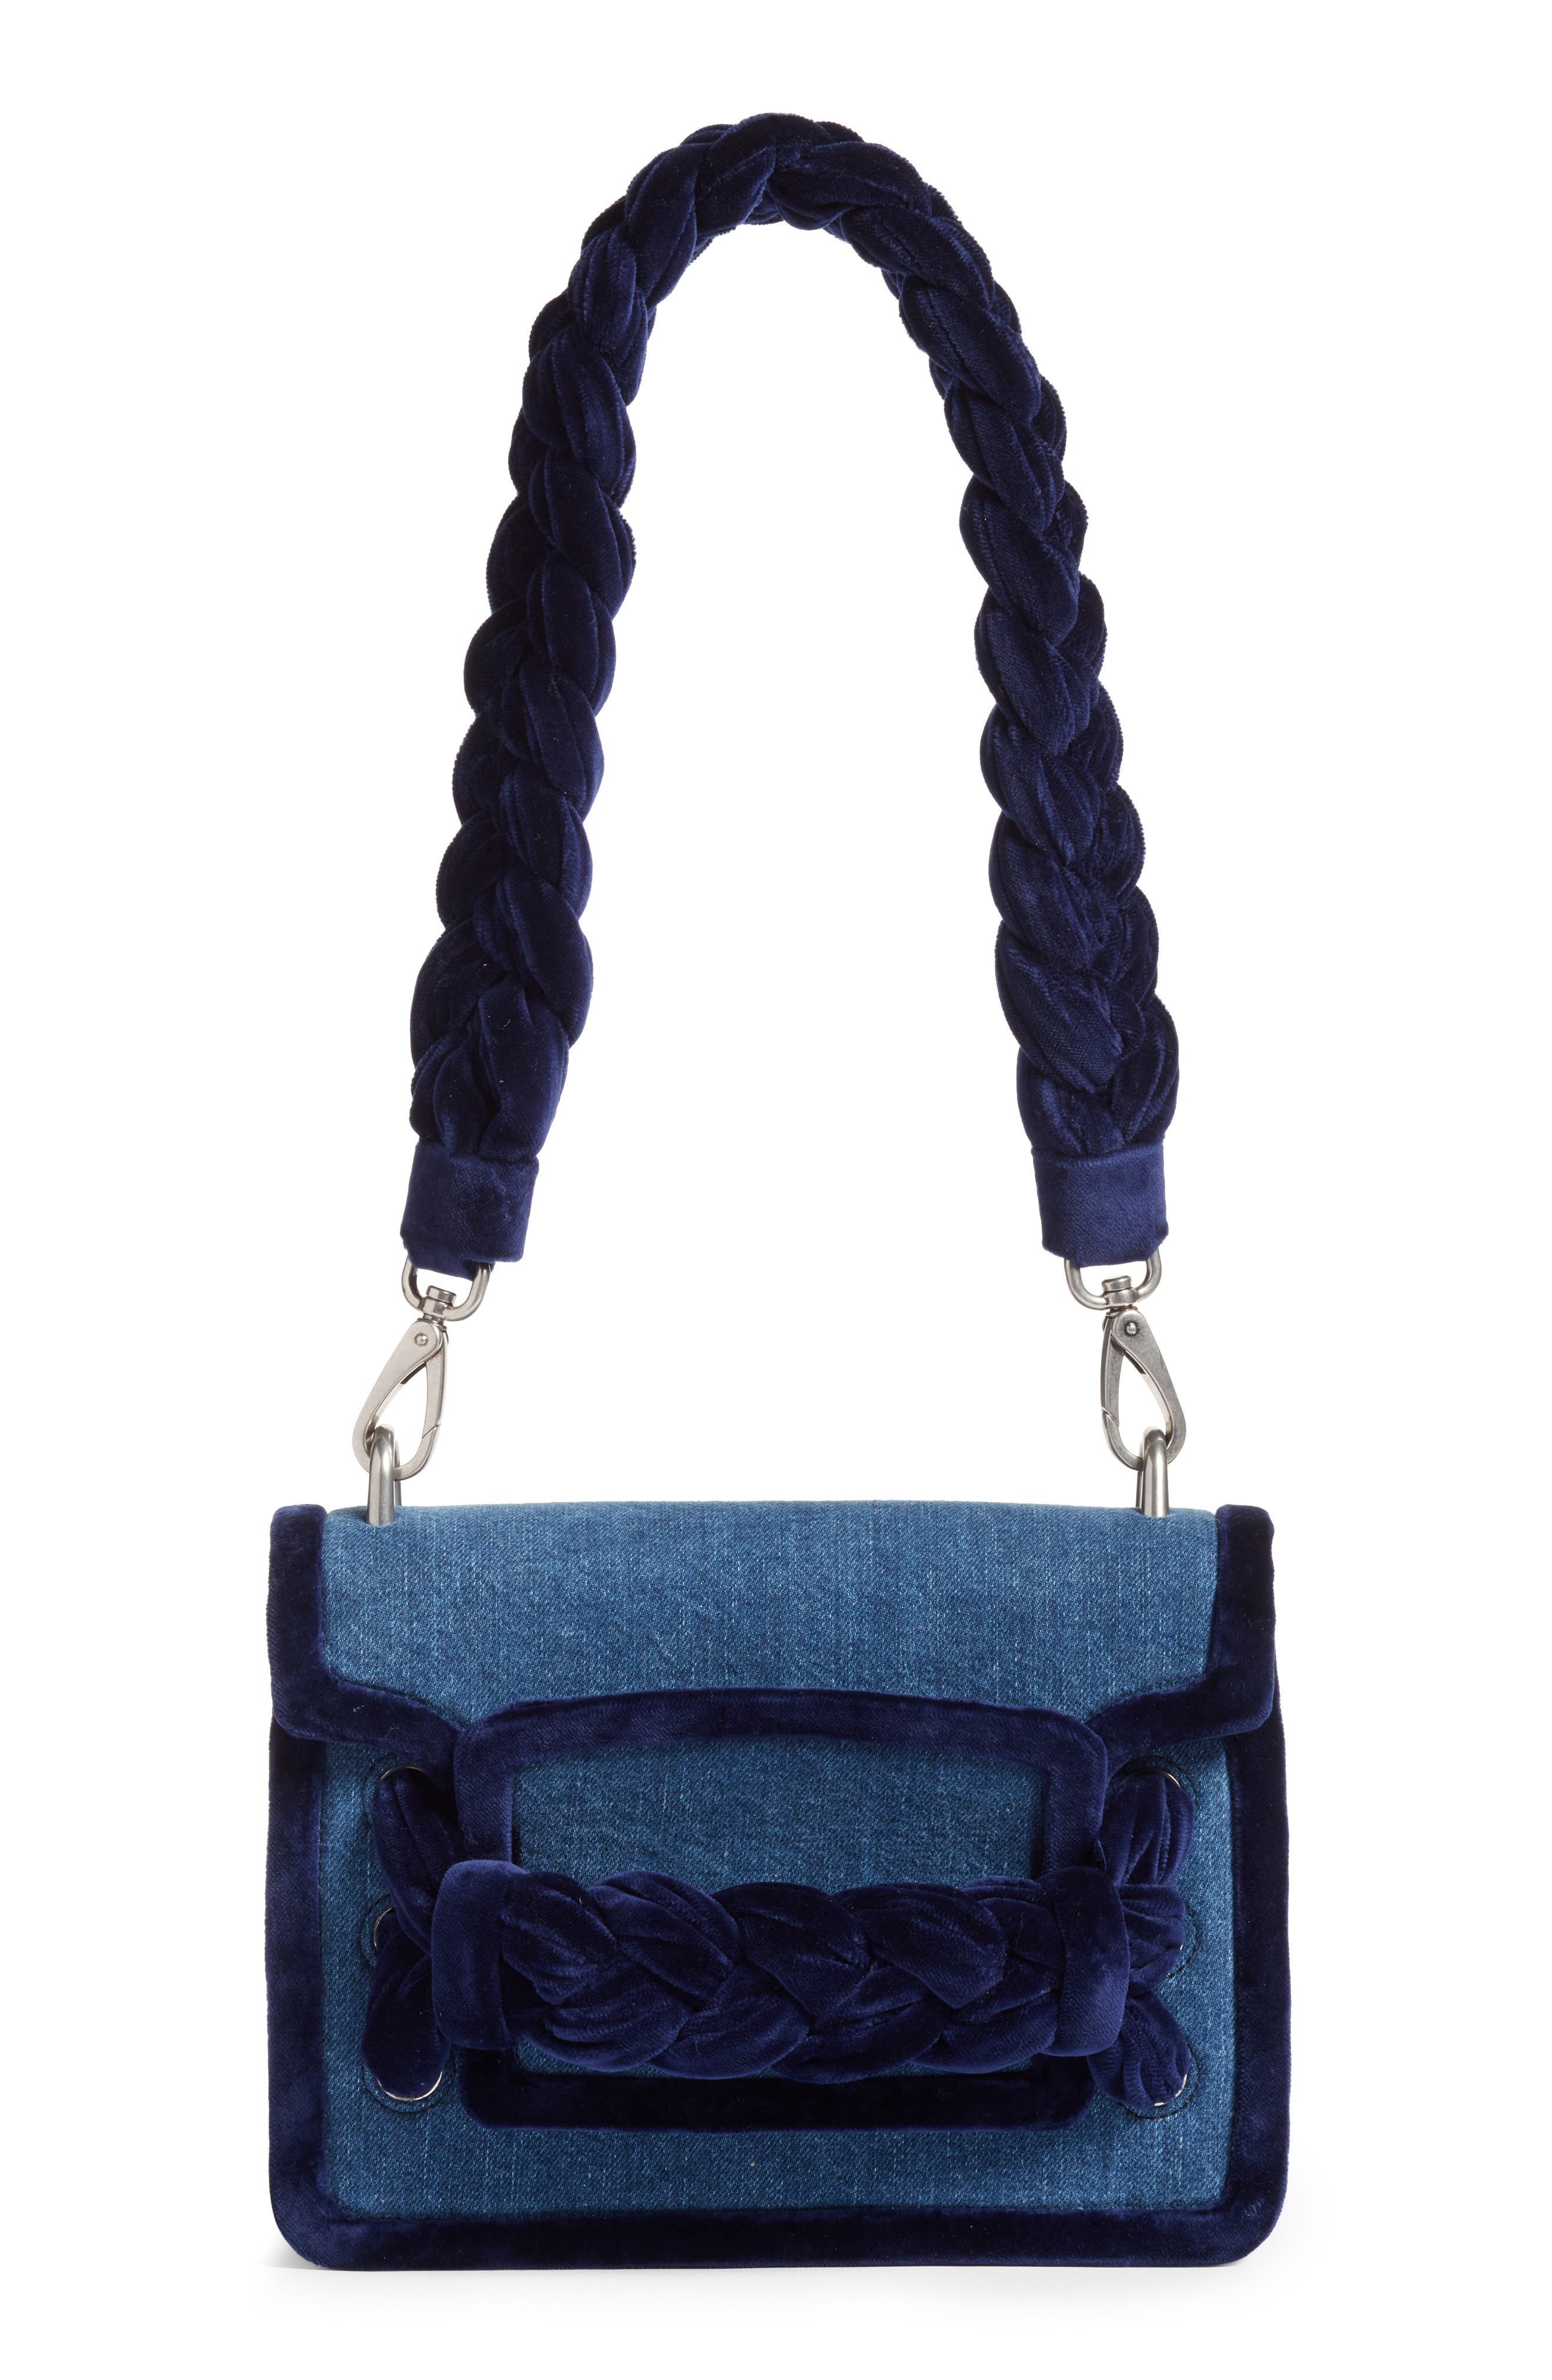 Miu Miu Treccia Denim & Velvet Shoulder Bag